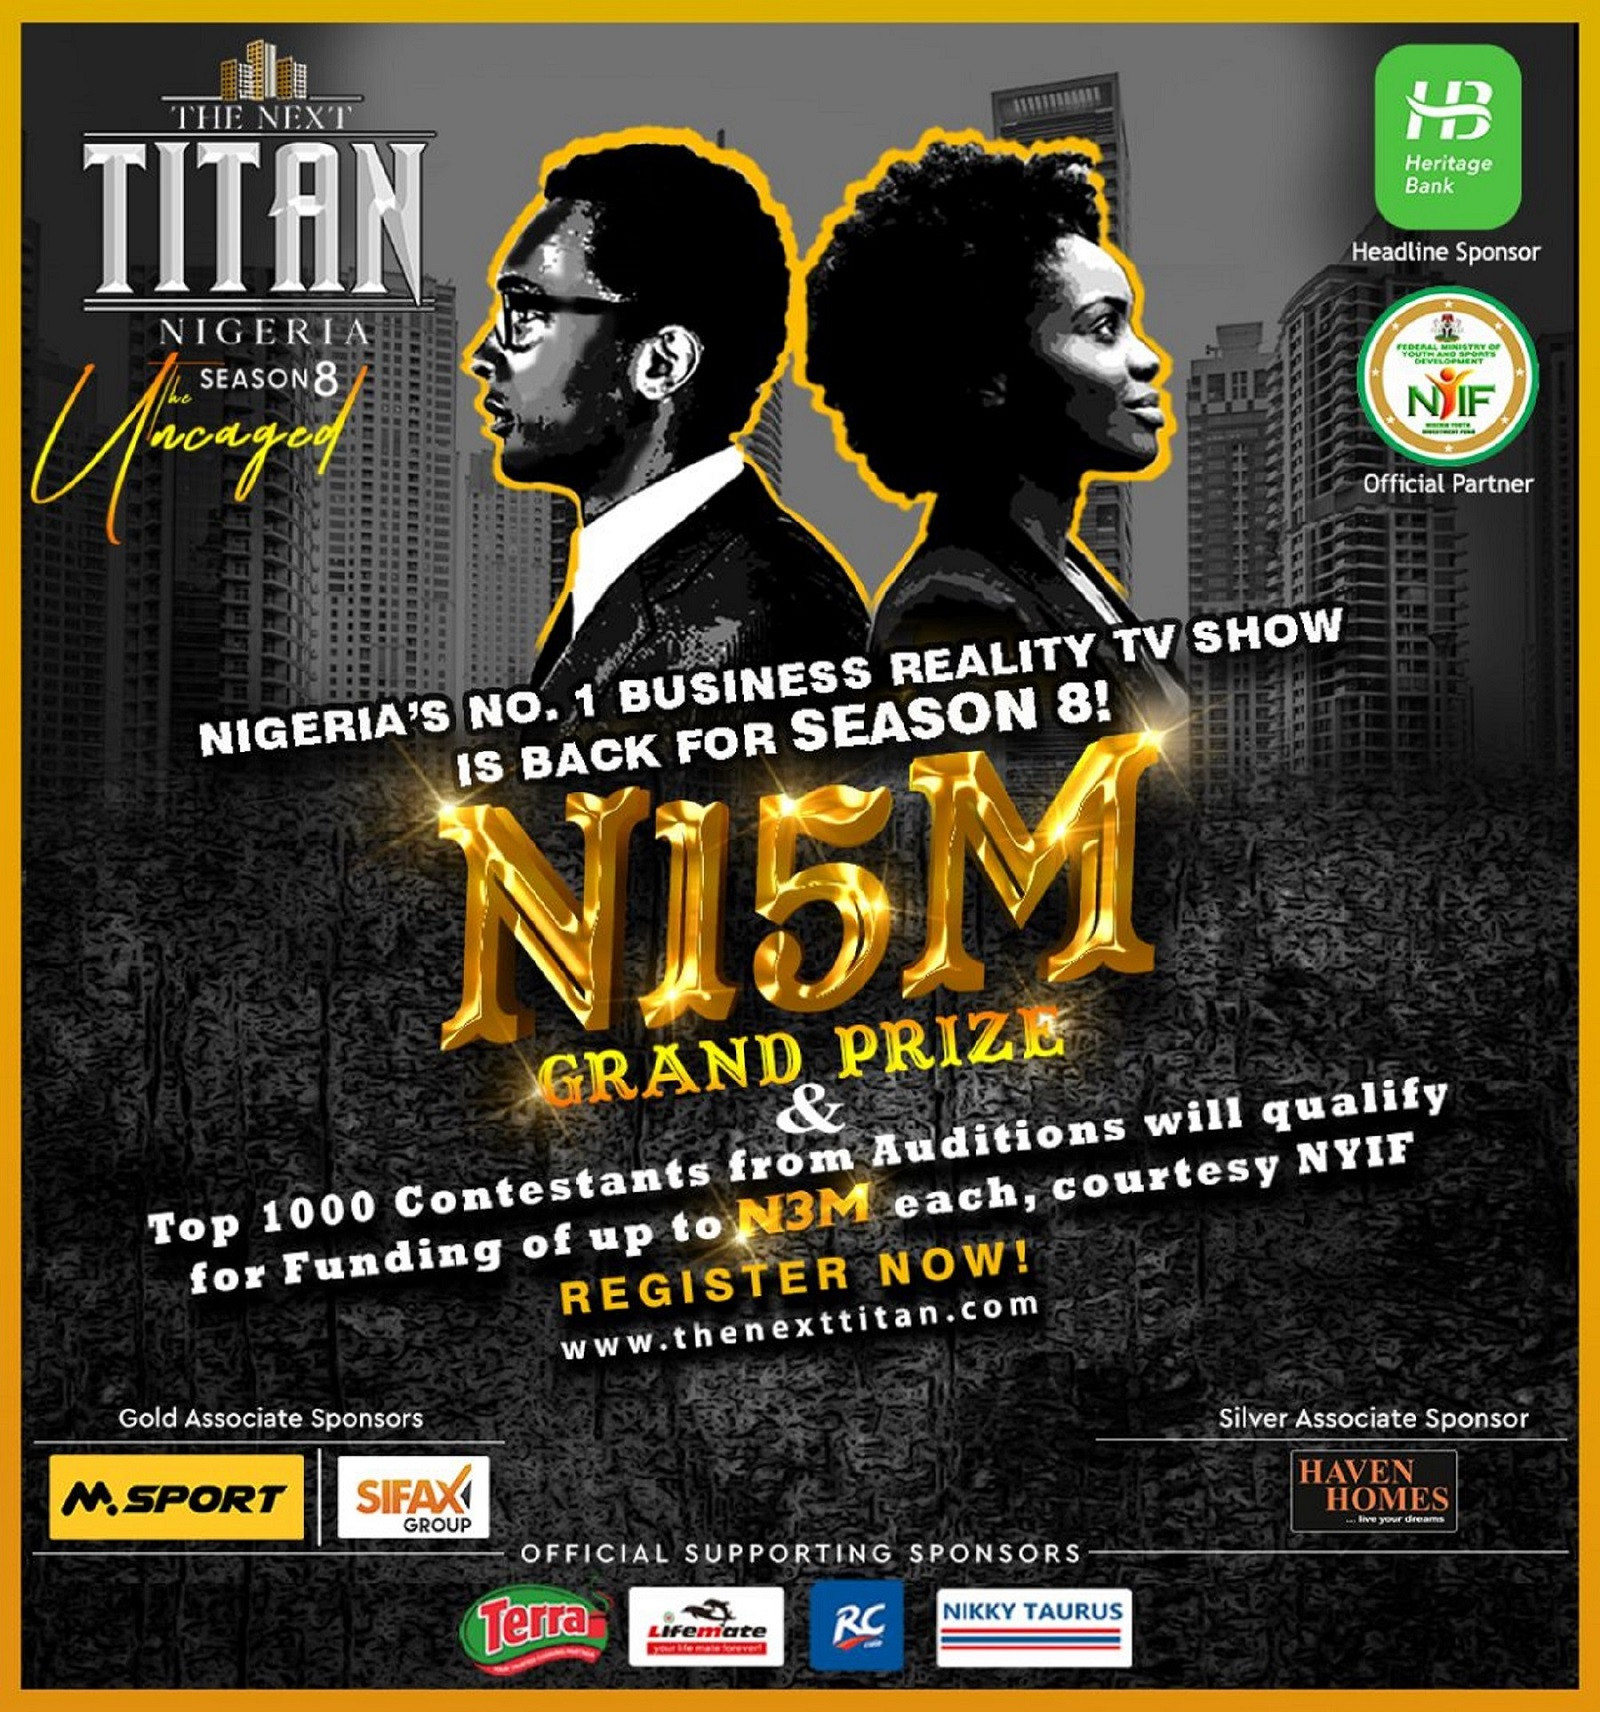 The Next Titan is back for Season 8 with N15M Grand Prize, and with up to N3M funding each for Top 1000 contestants from auditions